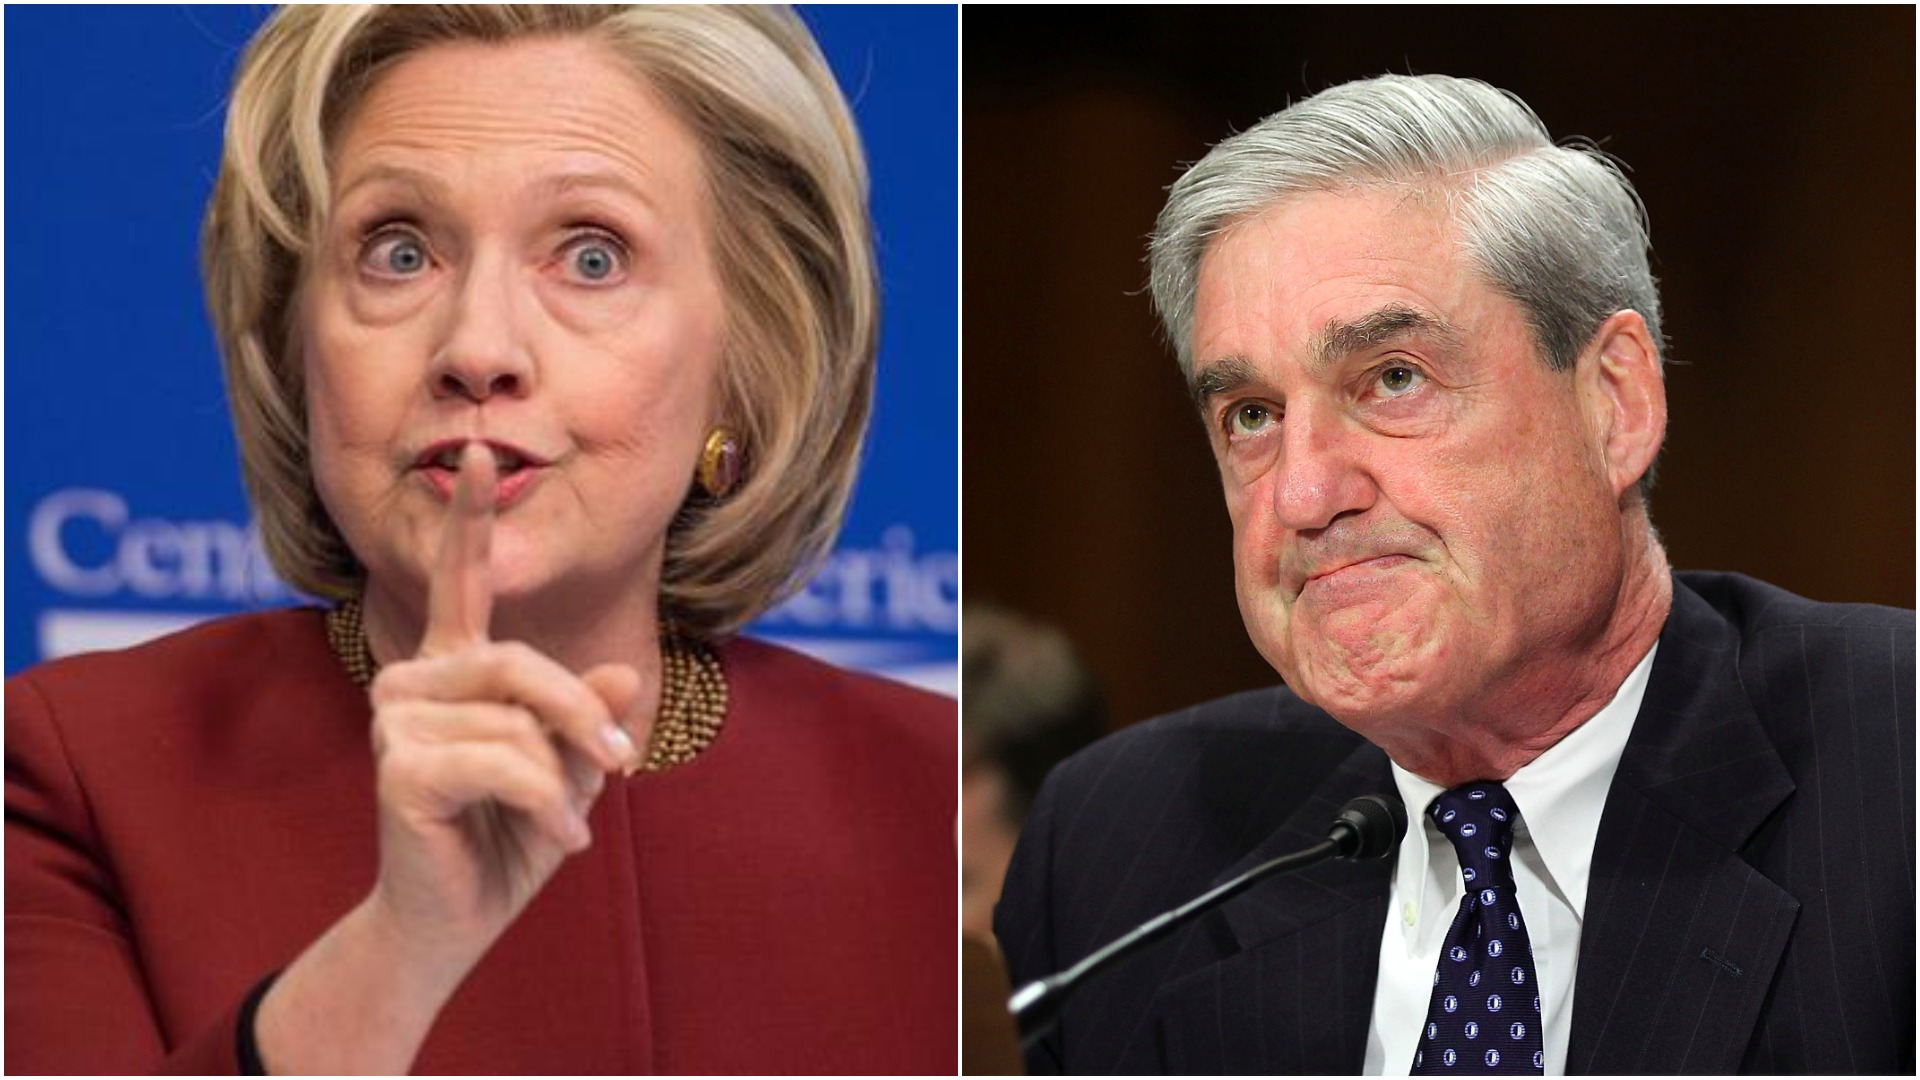 THIS IS GETTING BRIGADED LIKE CRAZY ----> Hillary Clinton Ordered Mueller To Deliver Uranium To Russians In 'Secret Tarmac Meeting'